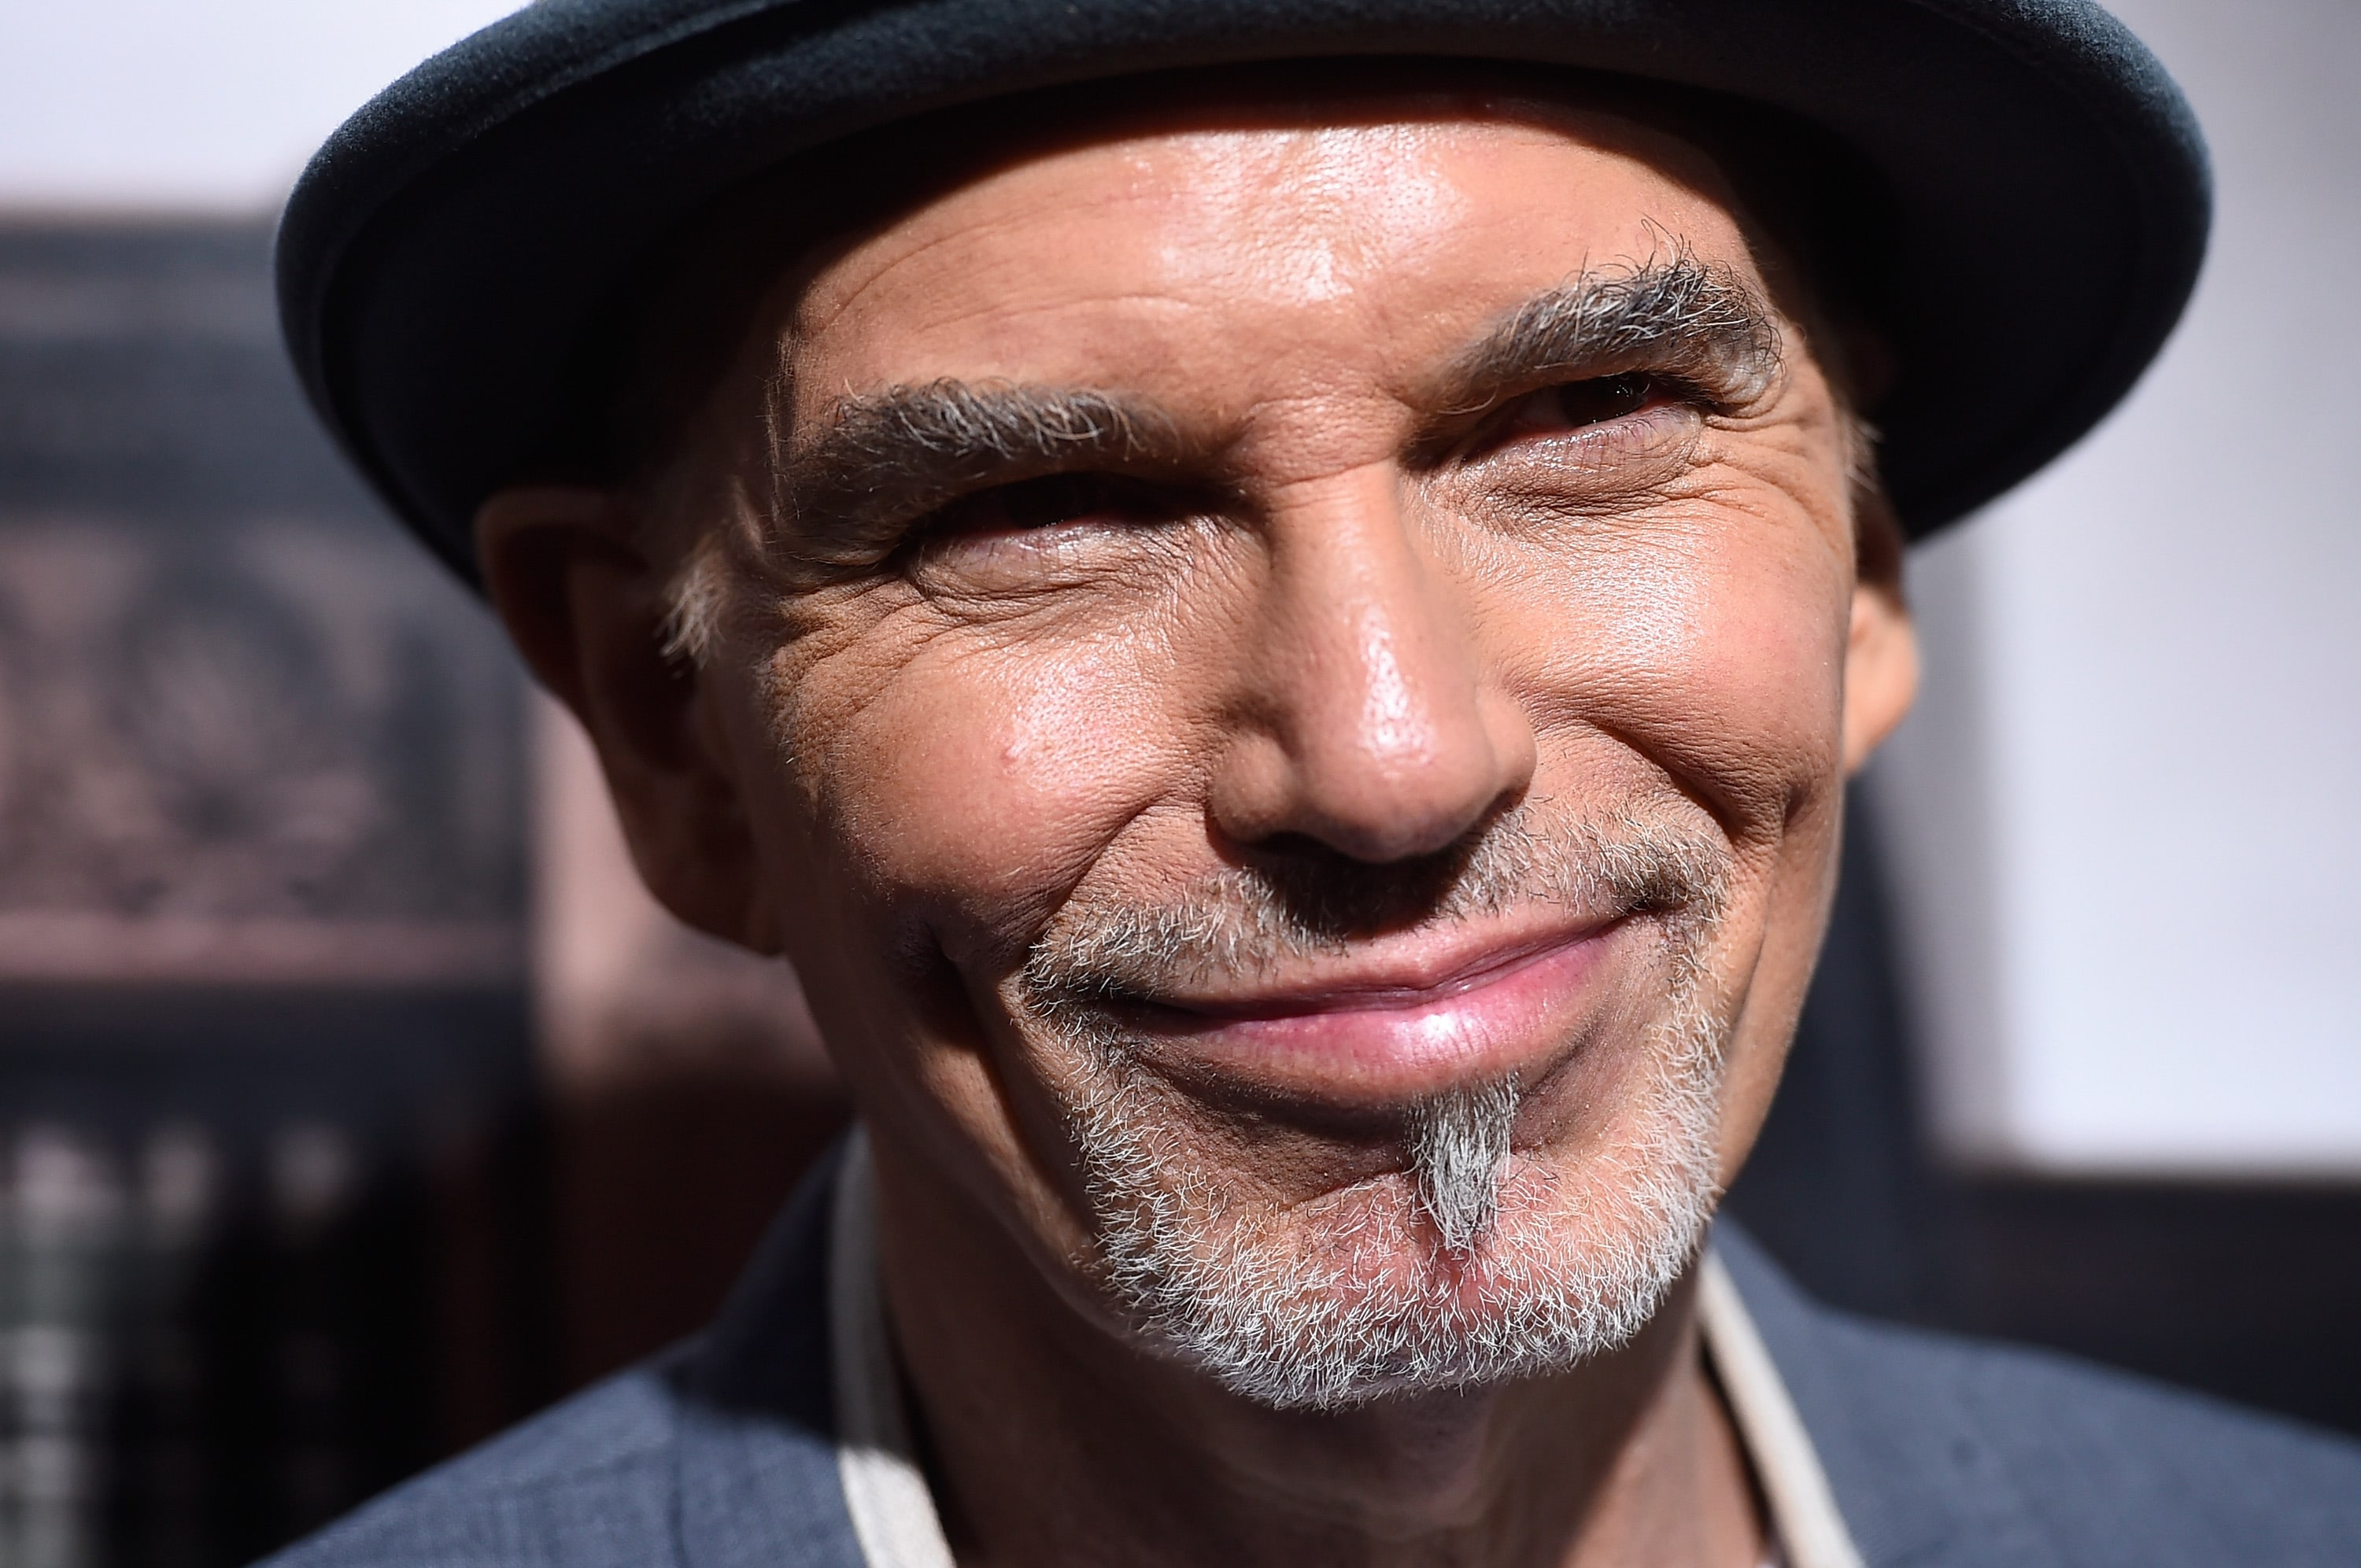 billy bob Billy bob thornton thornton in february 2012 billy bob thornton[1][2][3] (born august 4, 1955)[4] is an american actor, filmmaker, singer, songwriter, and musician.